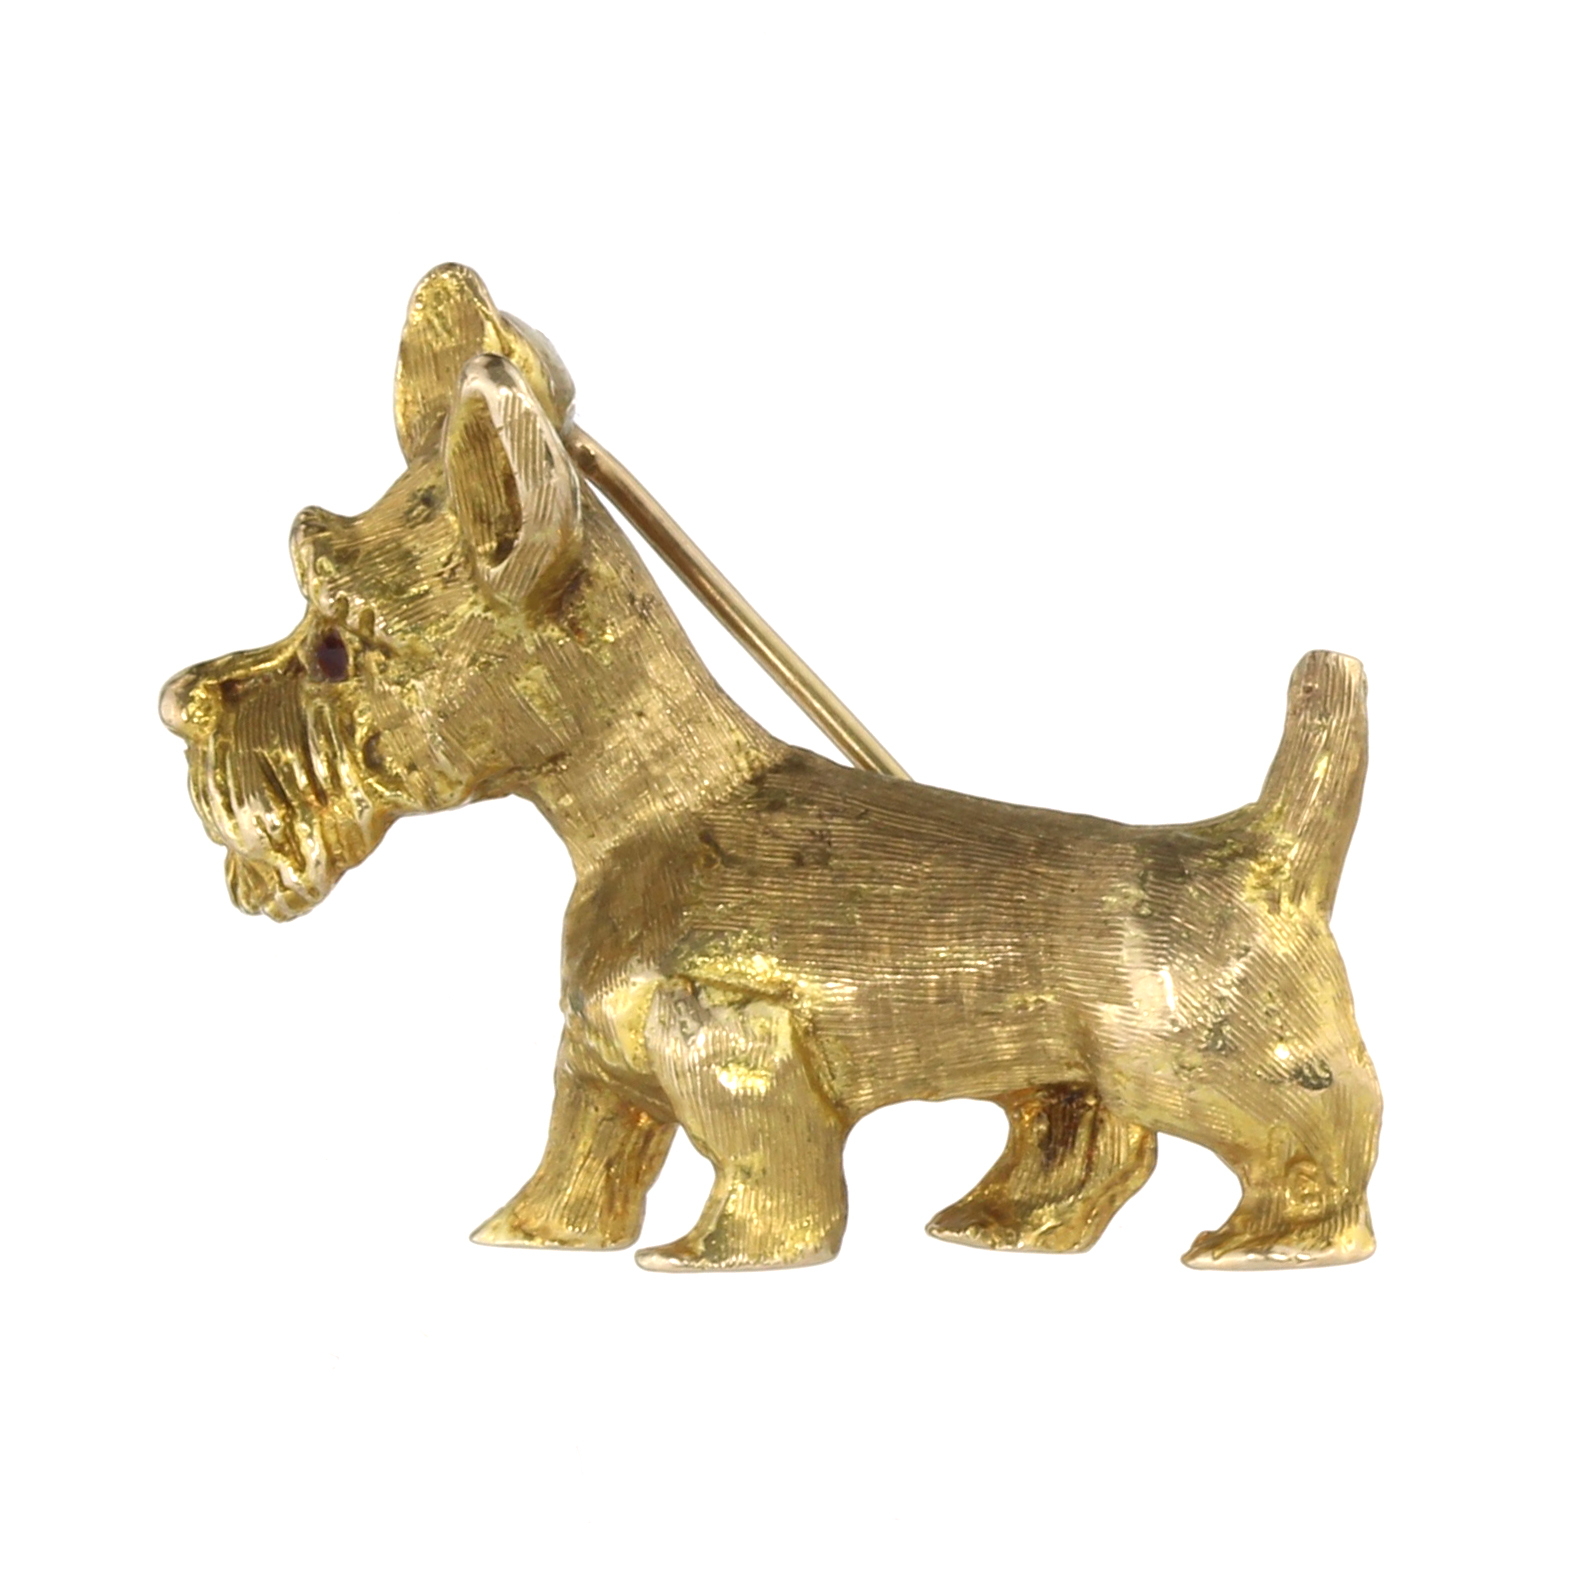 A VINTAGE JEWELLED SCOTTIE DOG BROOCH, CIRCA 1960 in yellow gold designed as a Scottish terried,